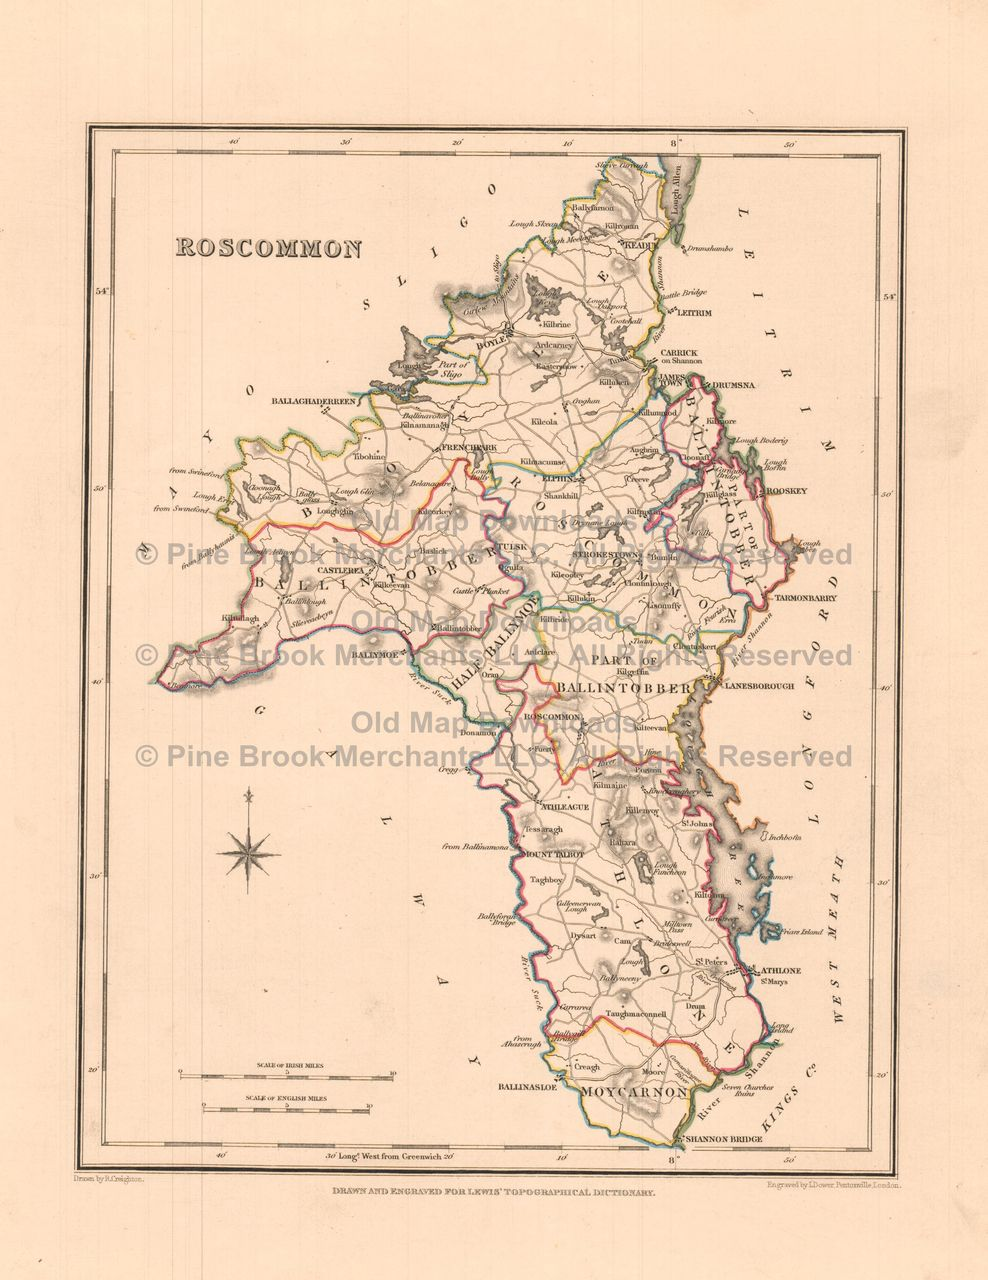 Old Map Downloads Roscommon County Ireland Old Map Lewis - Ireland map download